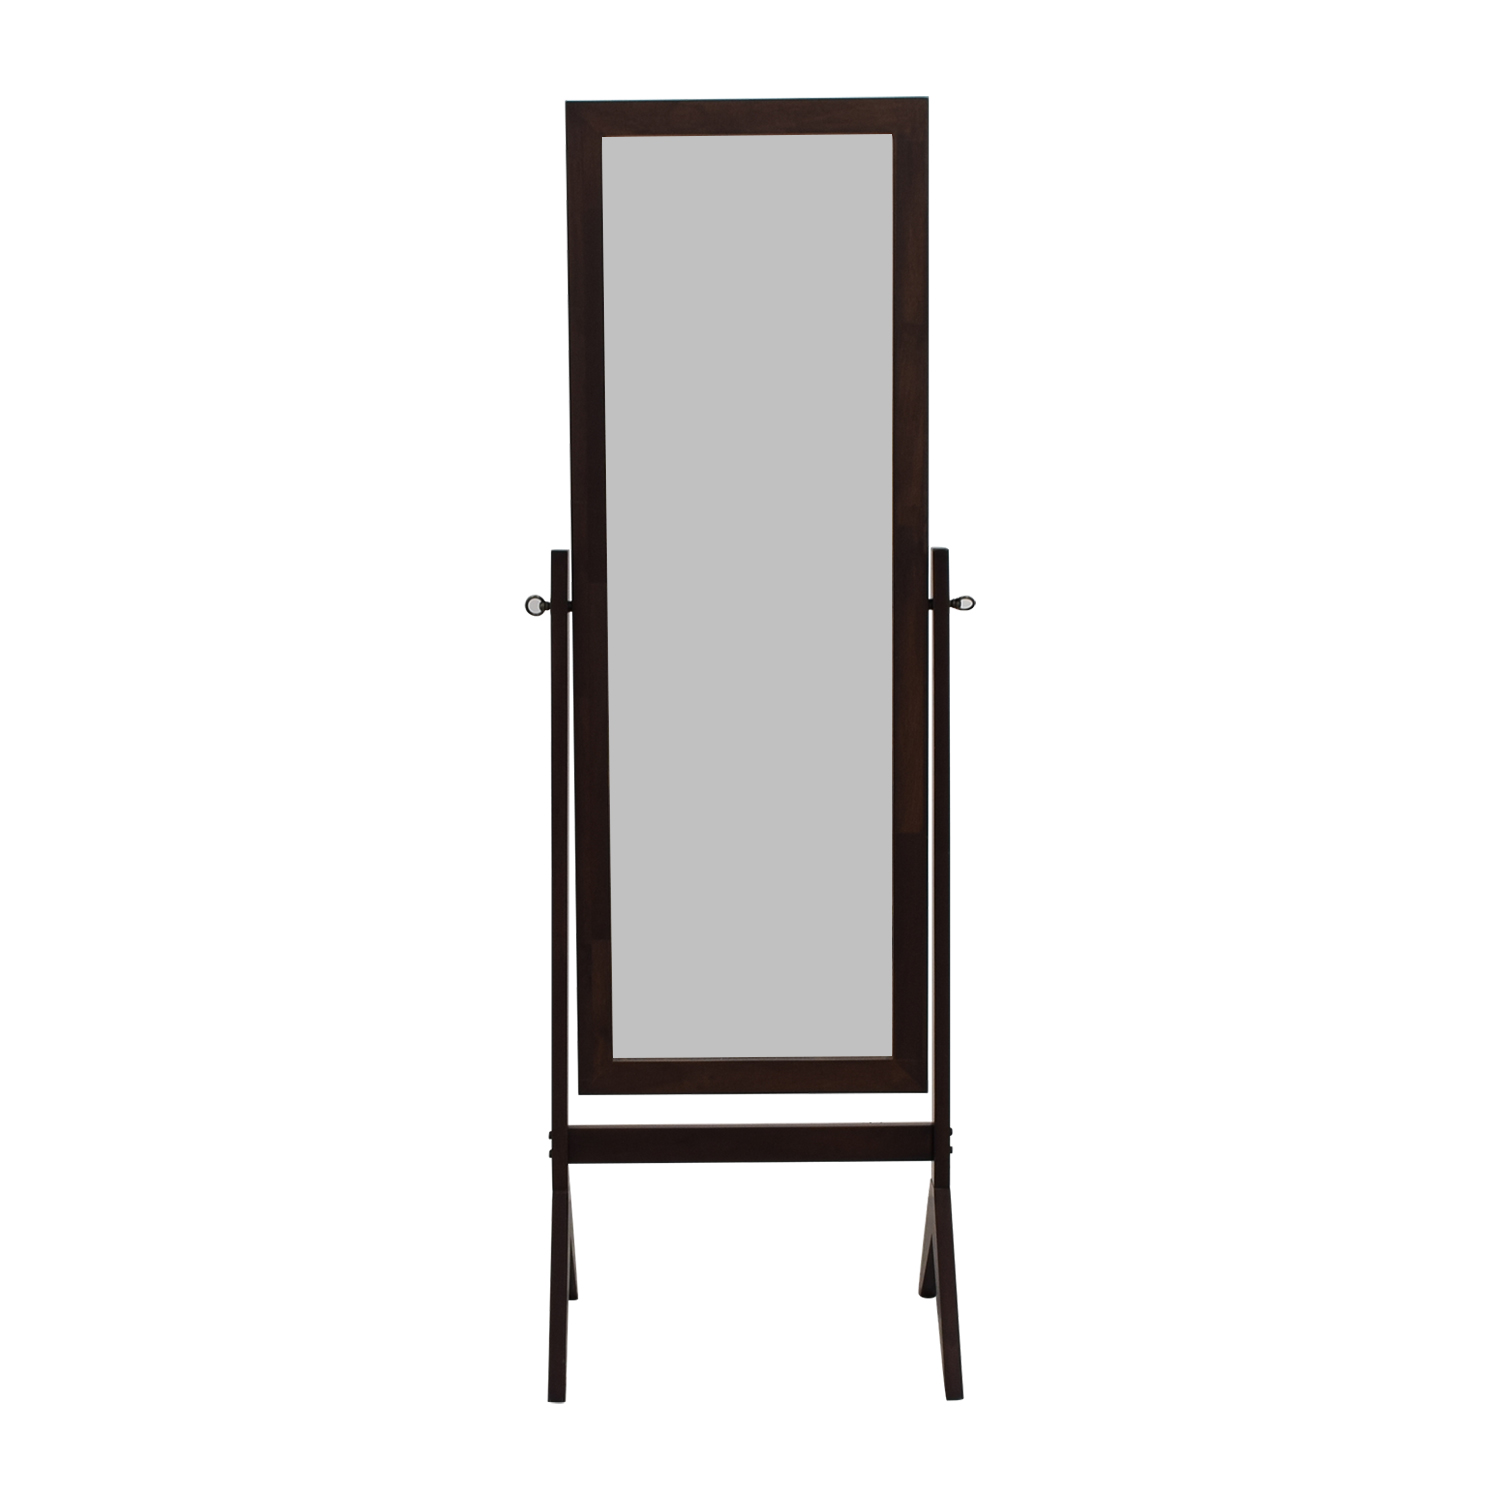 eHomeProducts Espresso Wooden Cheval Floor Mirror / Decor